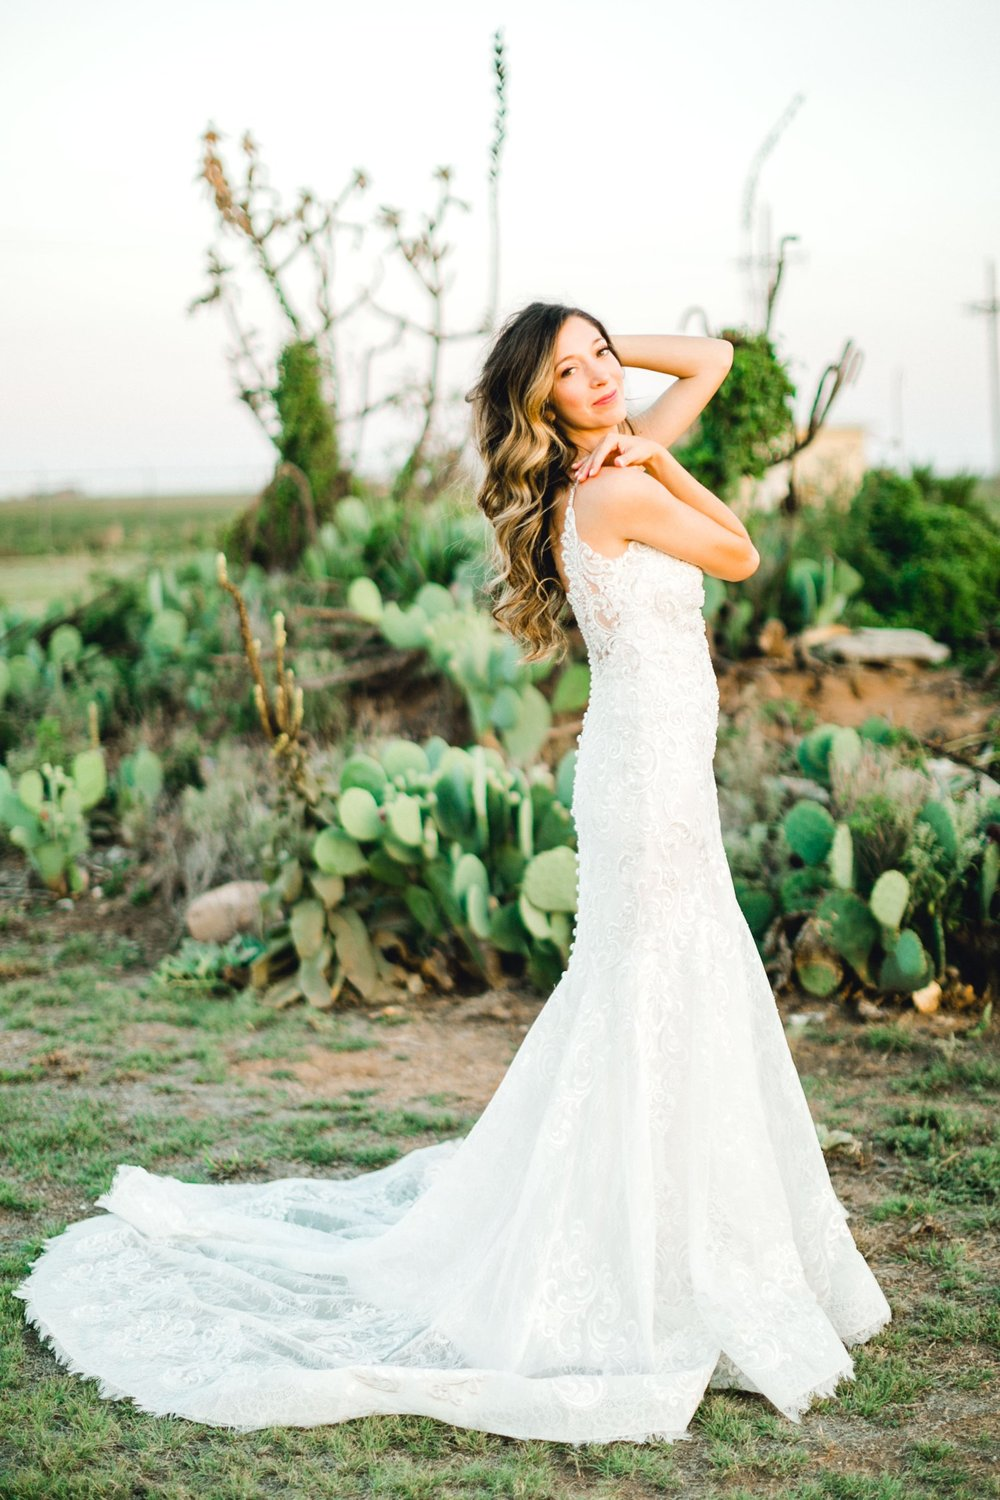 Ashley_Parr_Bridals_ALLEEJ_caprock_winery_romantic_elegant0031.jpg